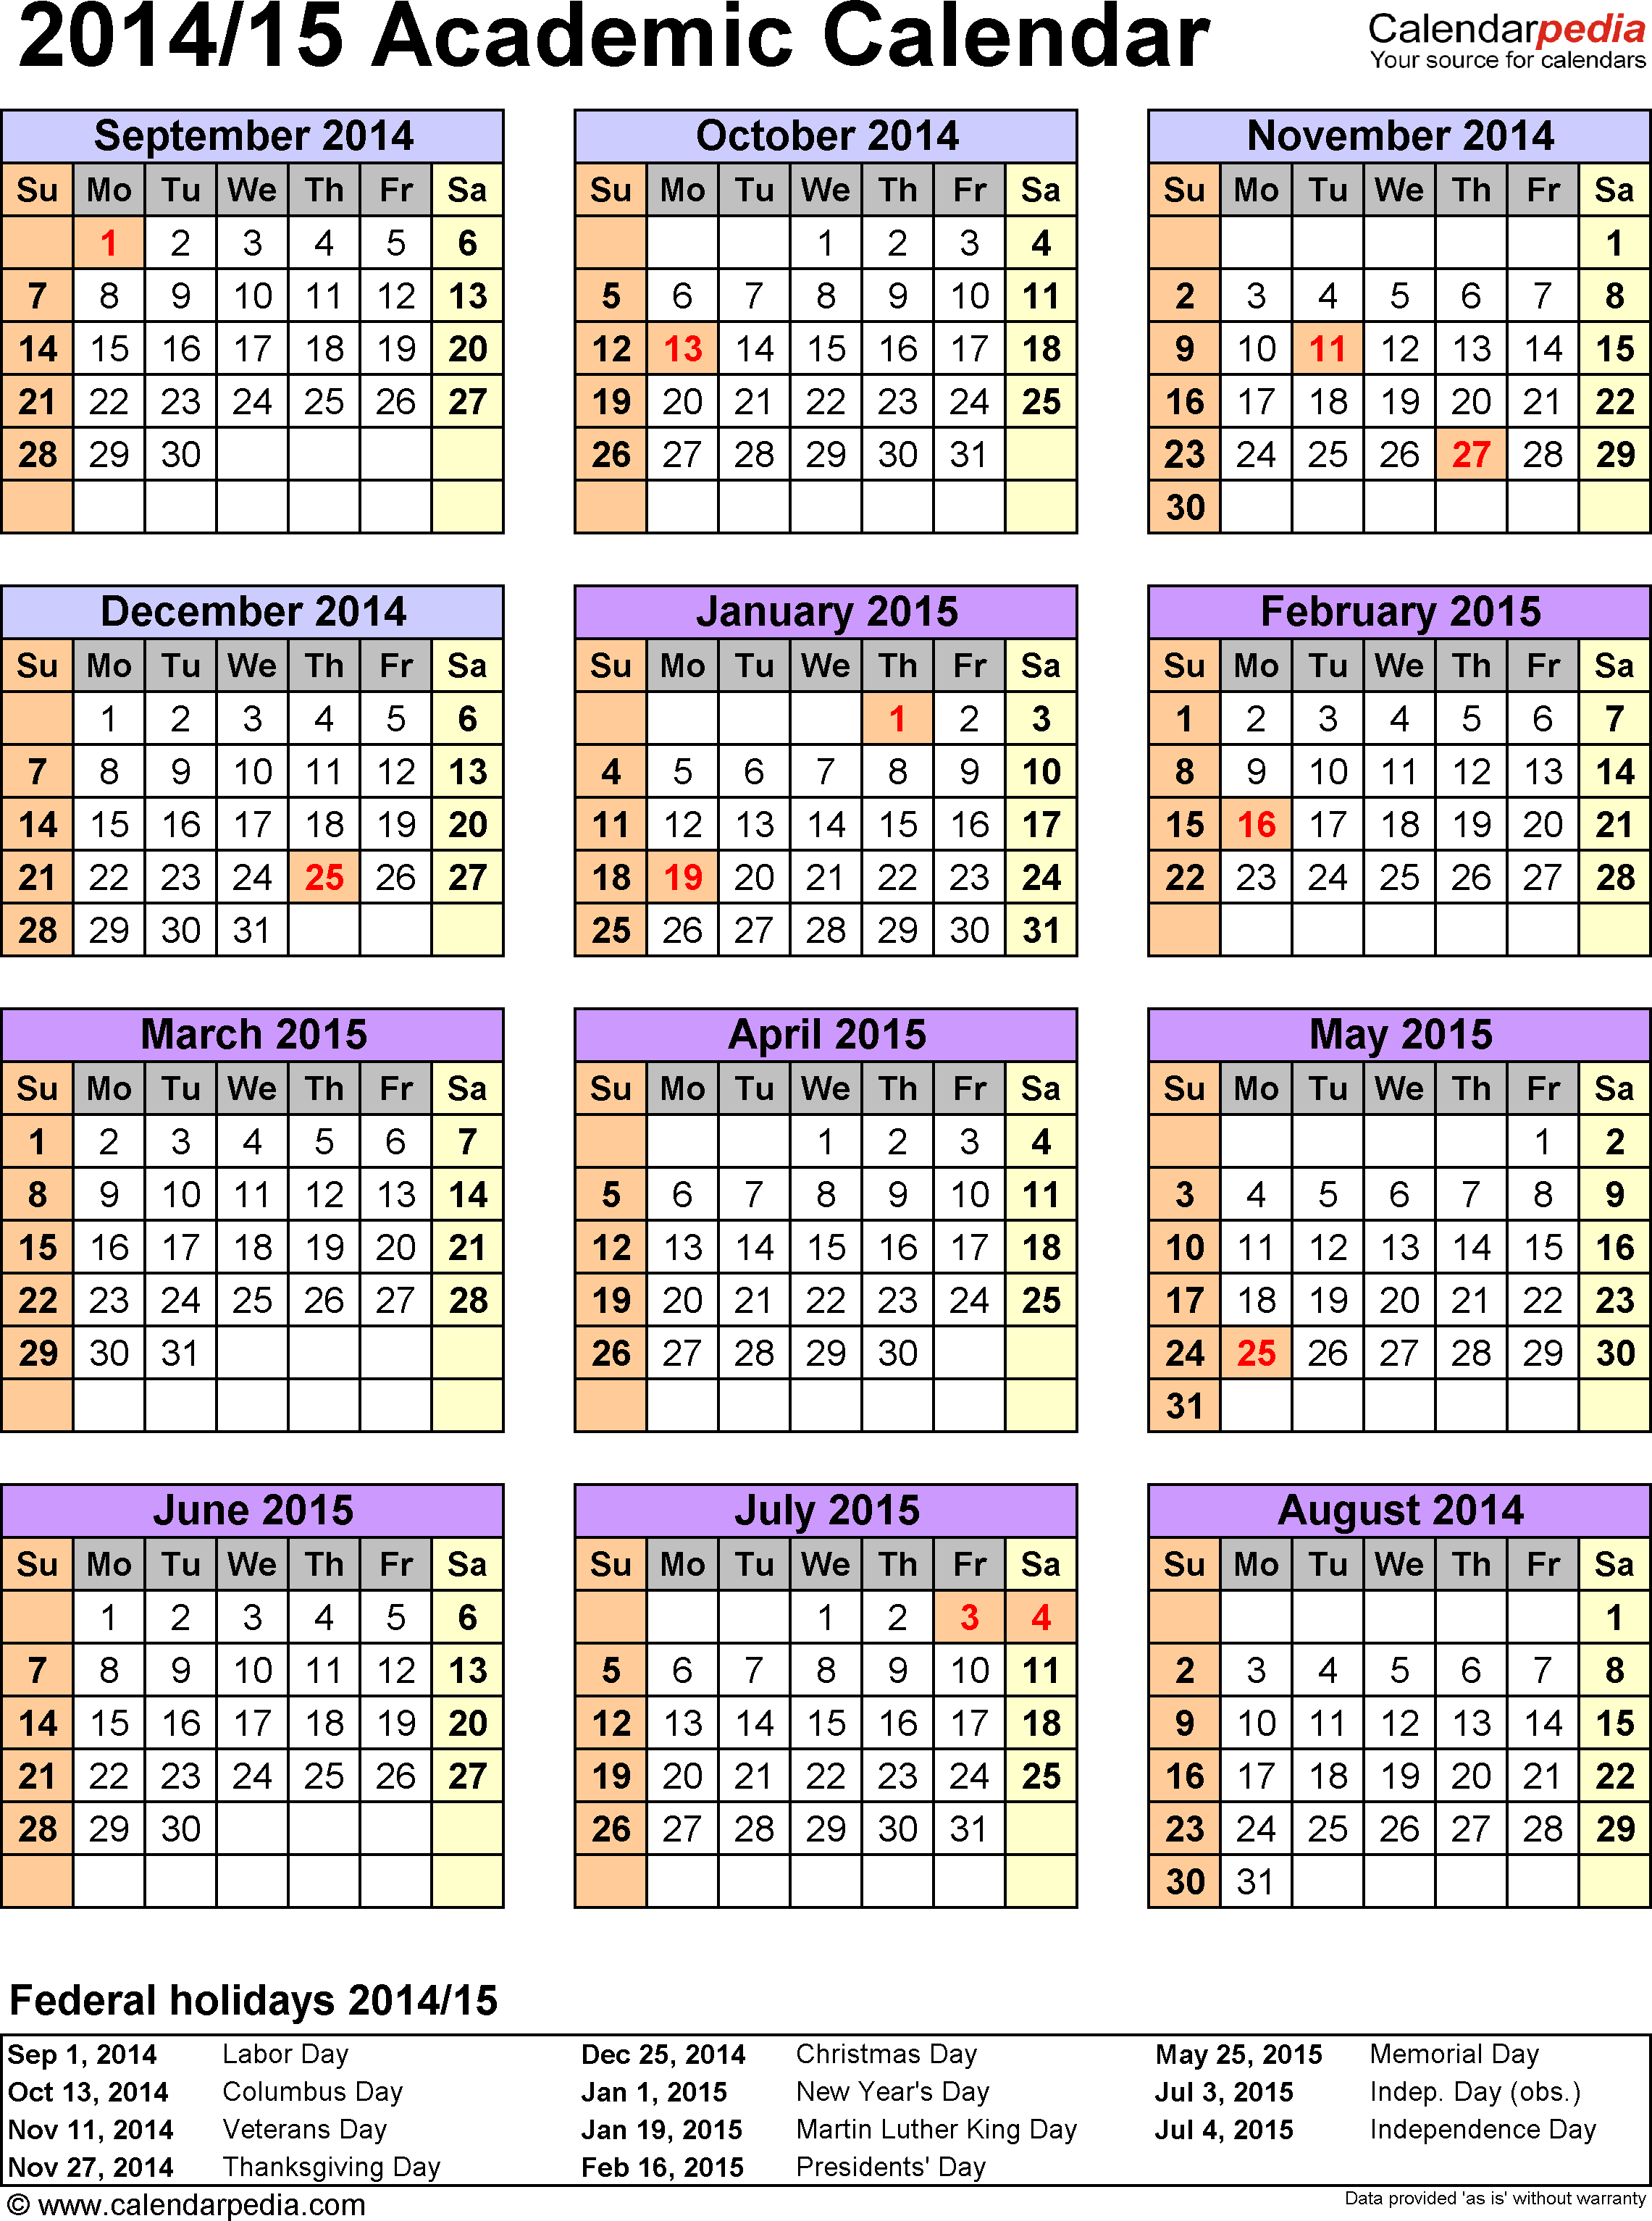 Template 5: Academic calendar 2014/15 for Excel, portrait, 1 page, year at a glance